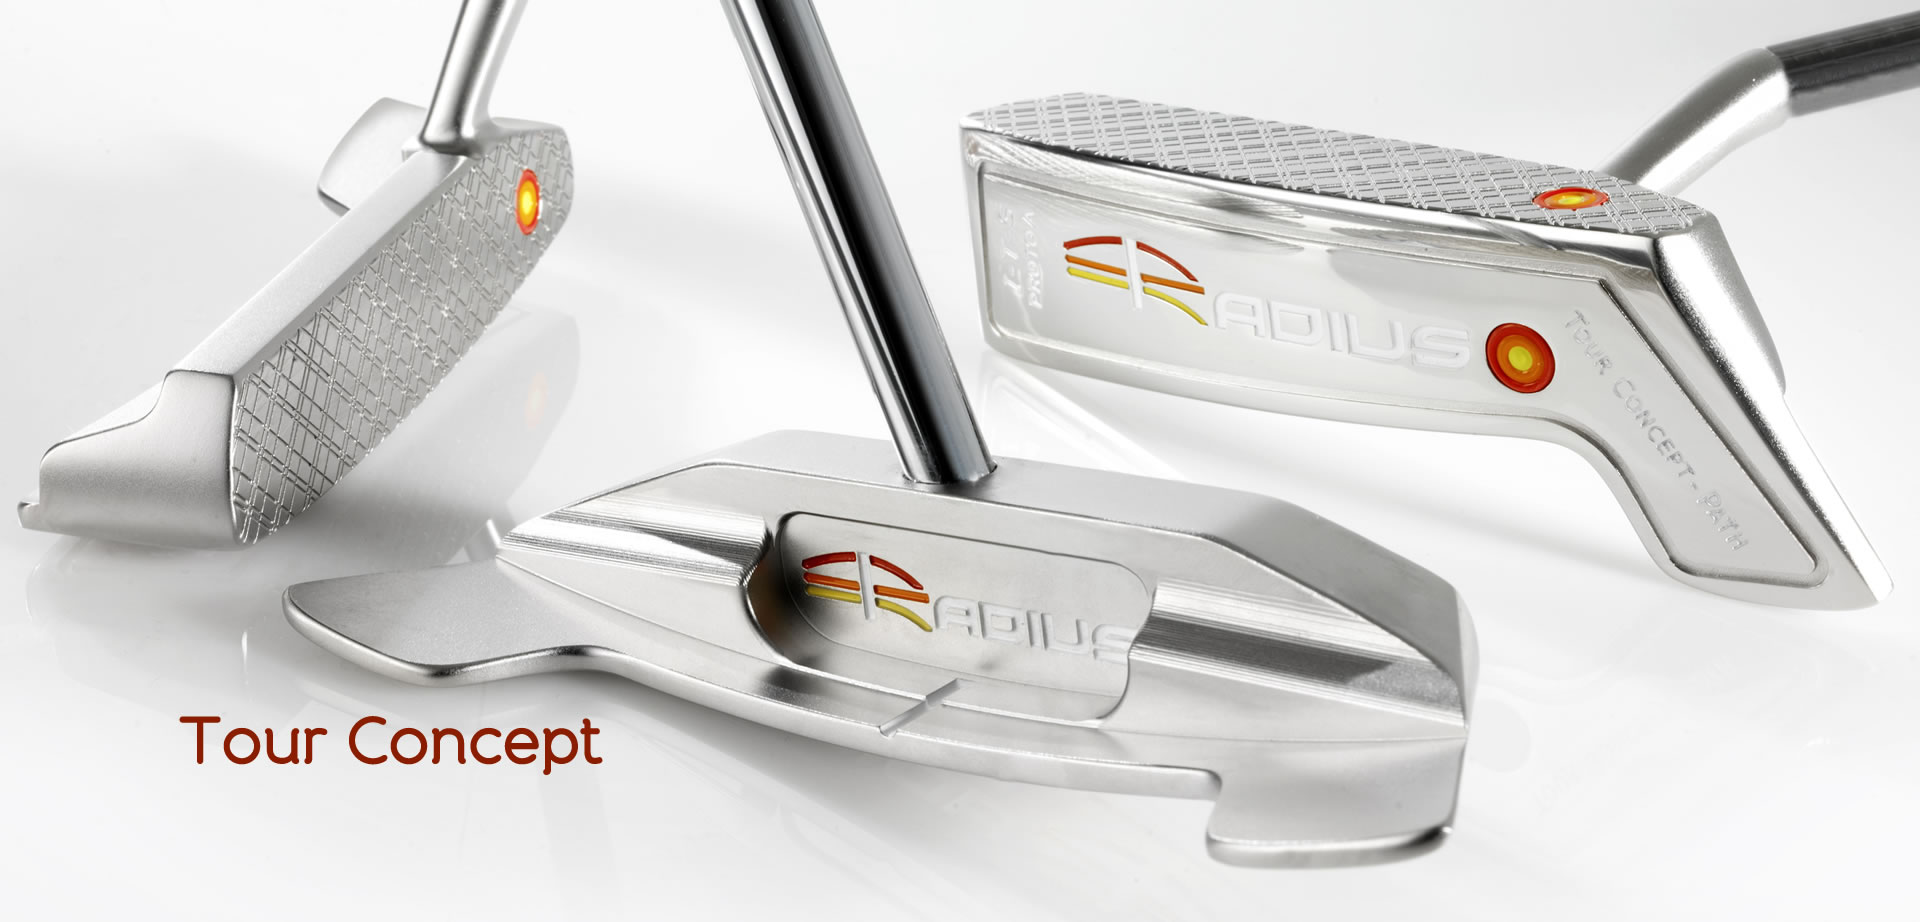 Tour Concept Putters Slider